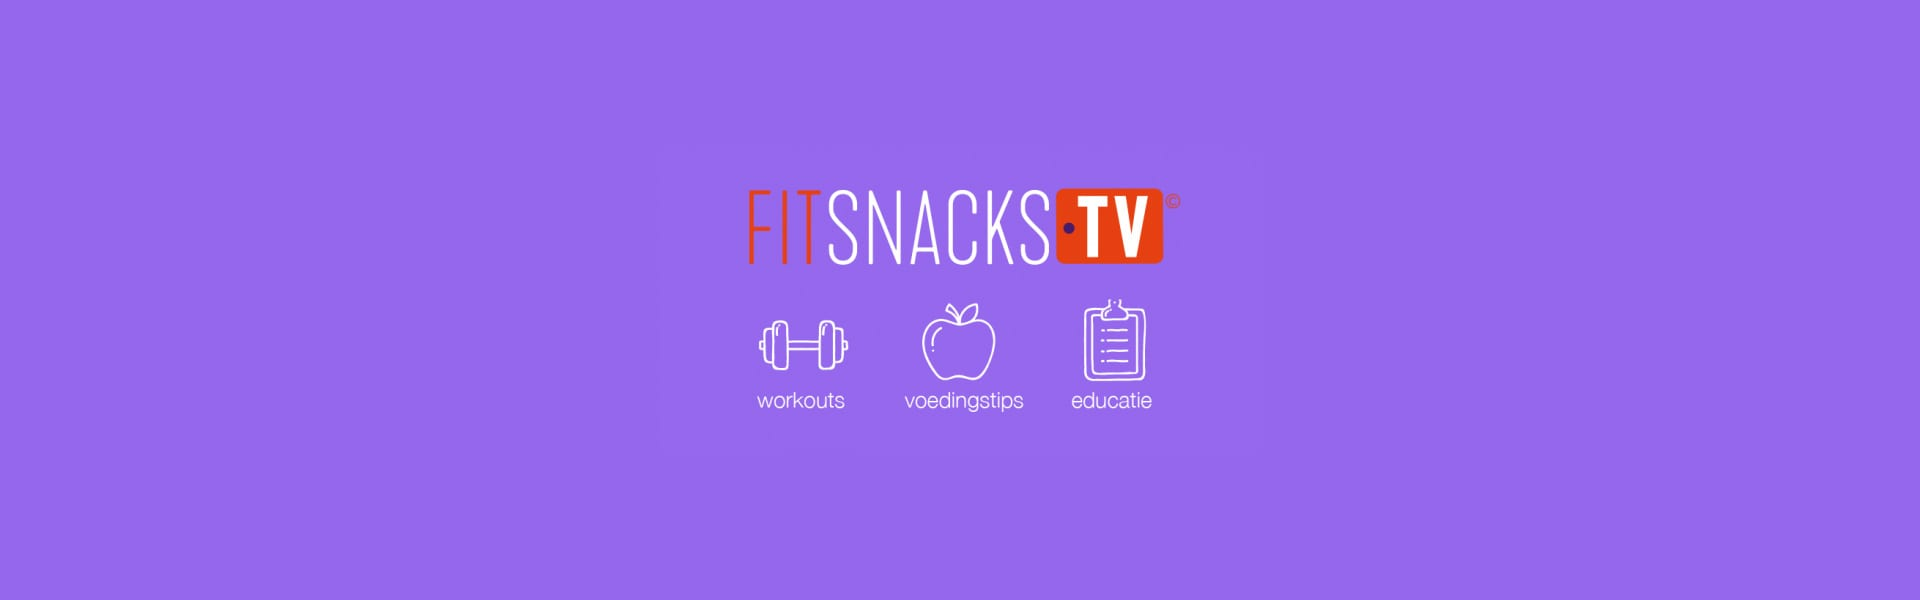 FitSnacks.TV-logo